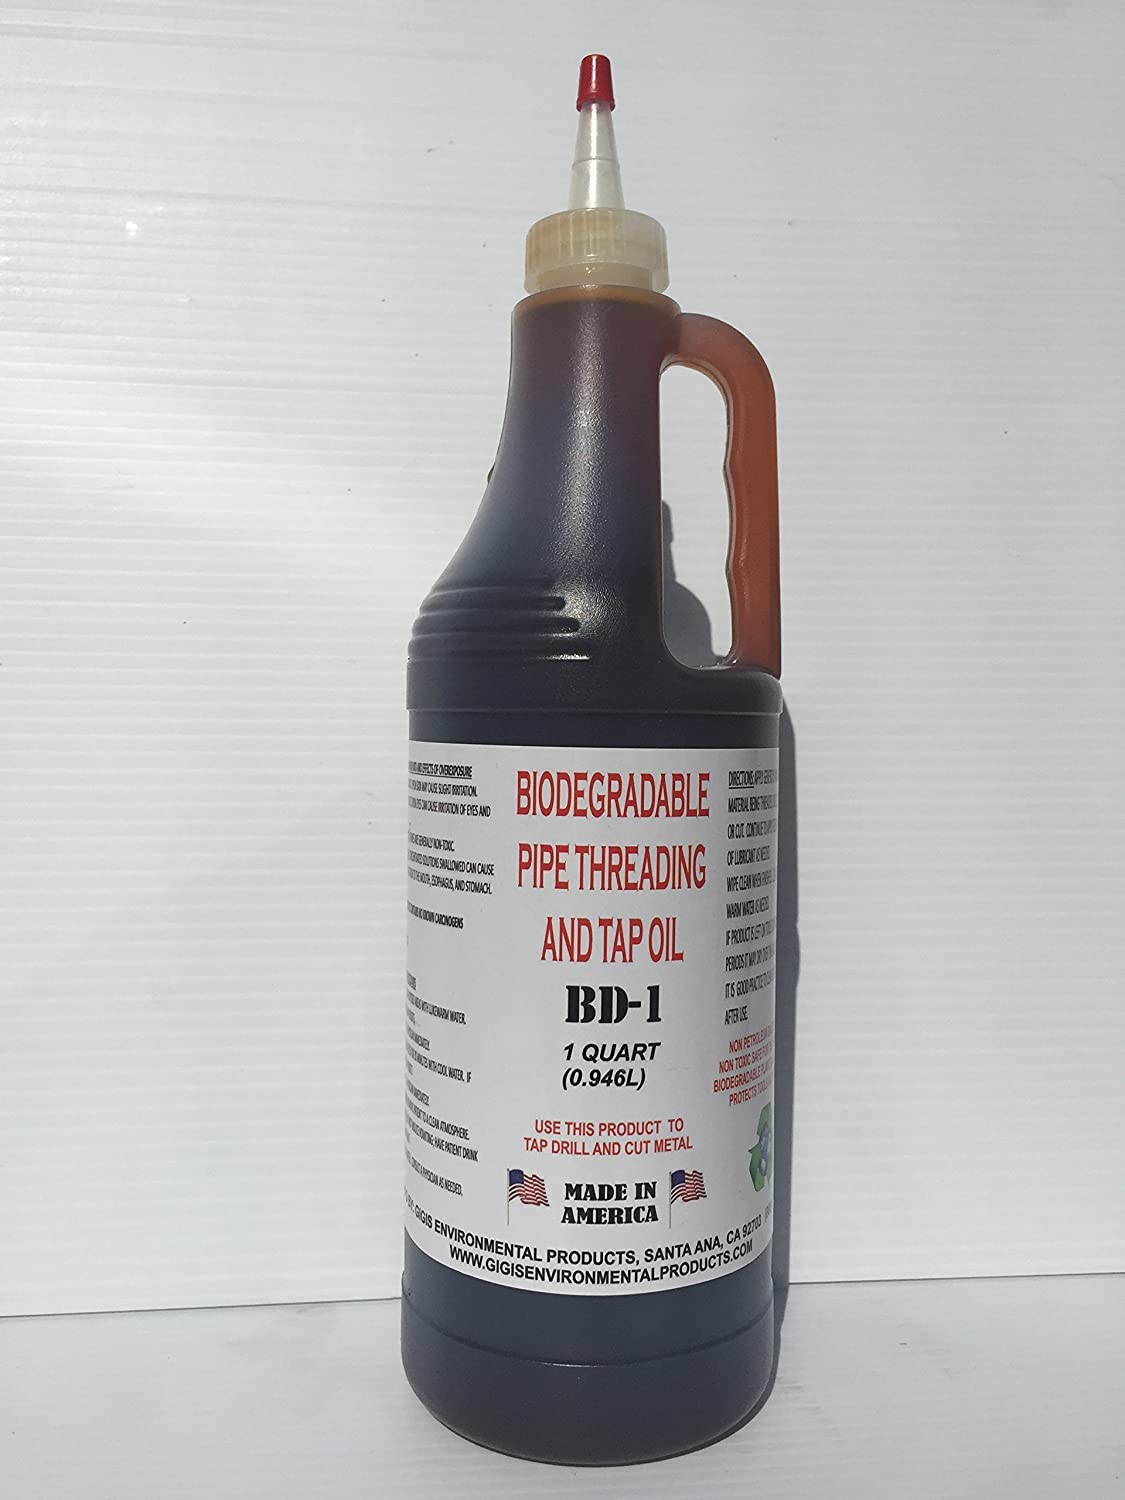 Biodegradable Pipe thread and tap oil